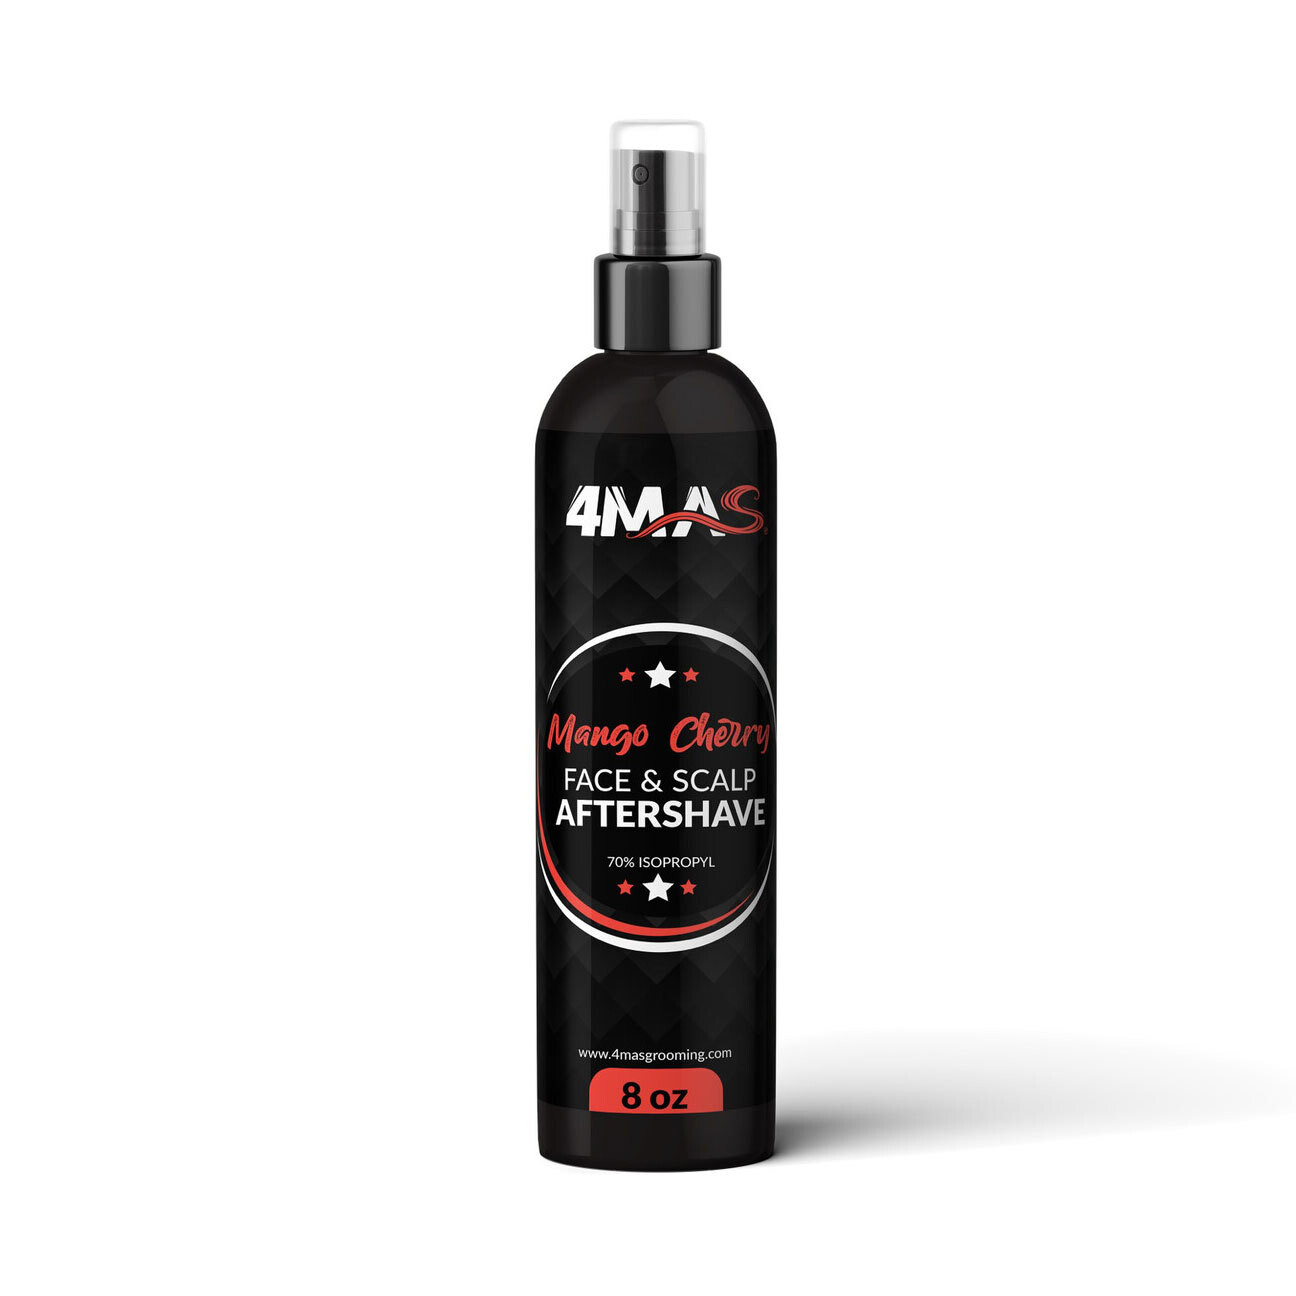 4MAS Mango Cherry Face and Scalp Aftershave 8oz